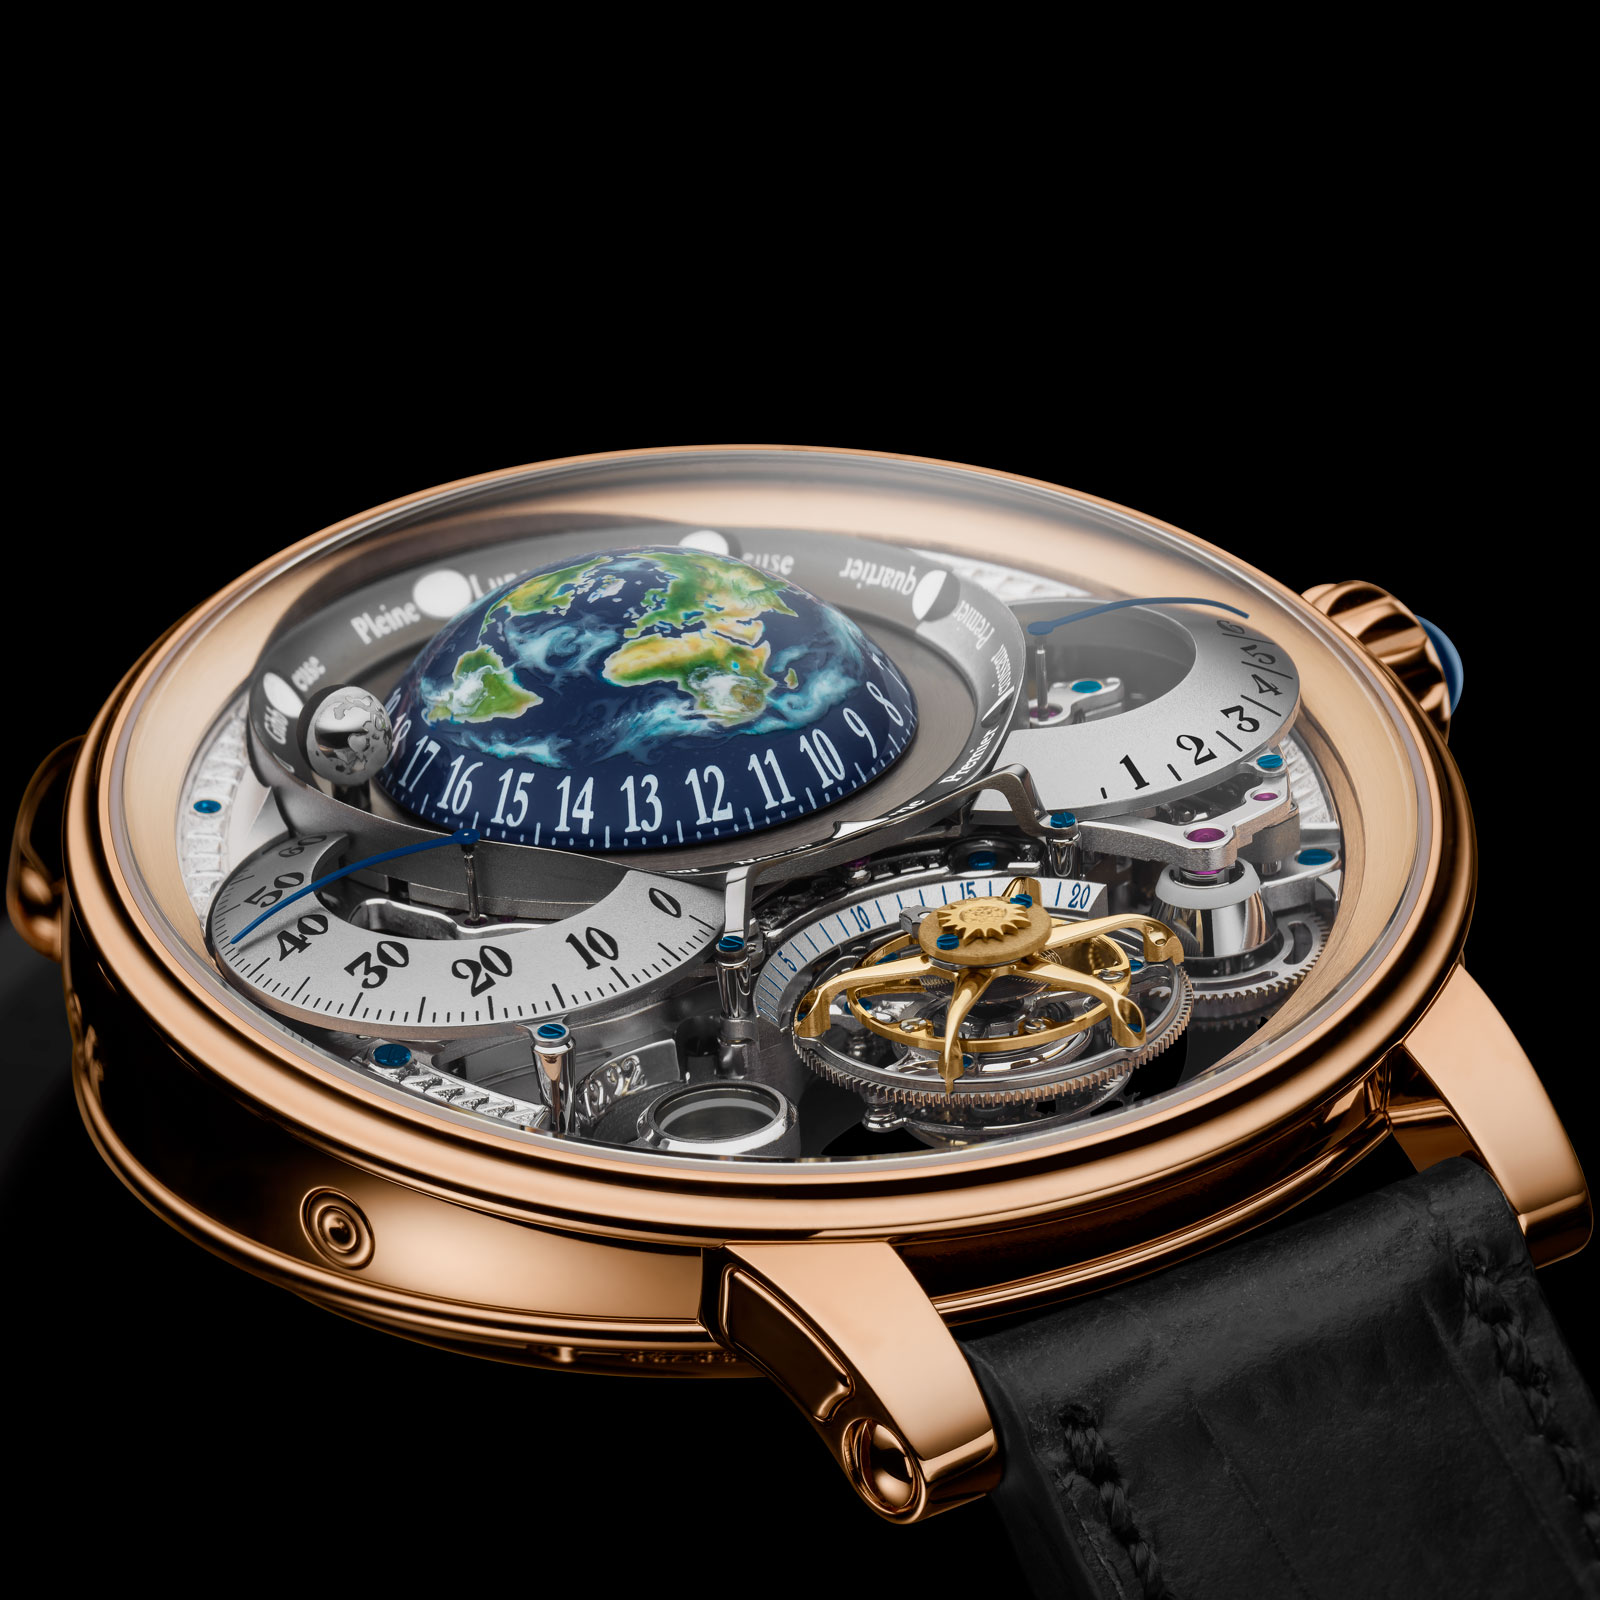 Bovet Most Expensive Watch